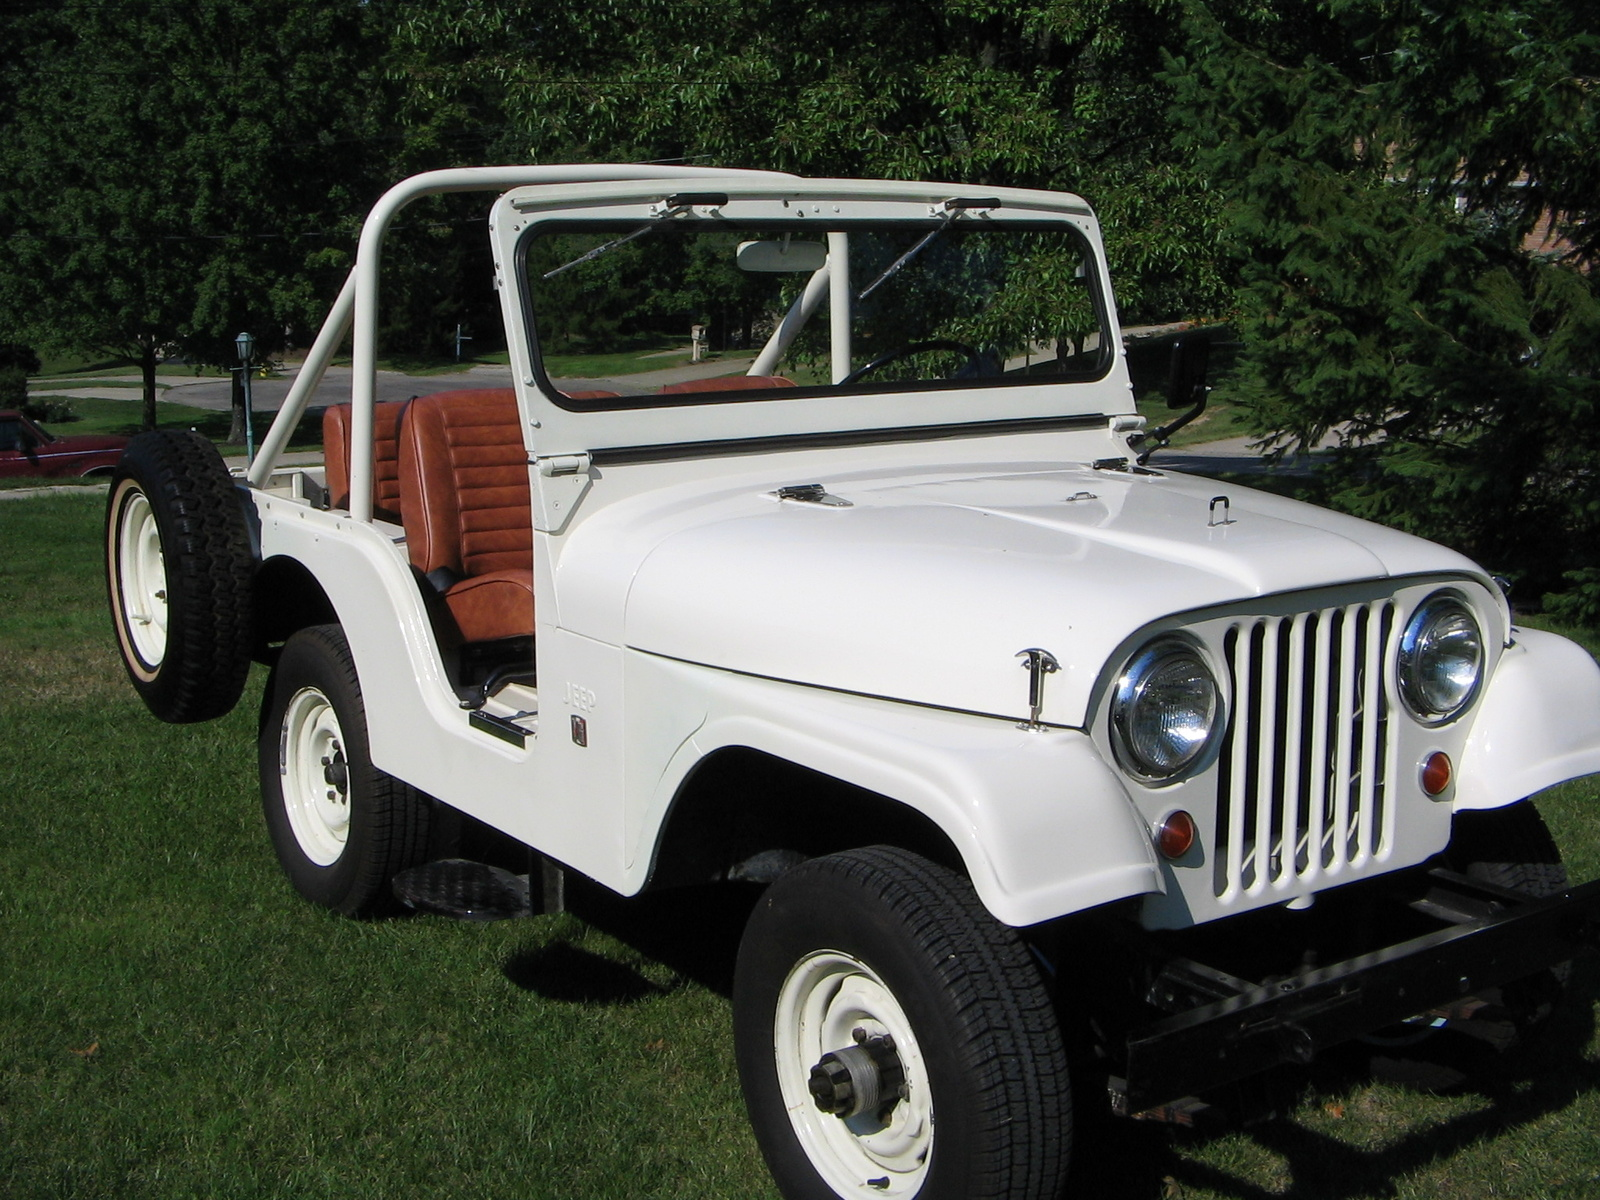 69 Jeep Cj5 Wiring | Wiring Liry  Jeep Cj Wiring Diagram on 1985 jeep cj7 wiring-diagram, 2004 chrysler sebring wiring-diagram, 1973 mgb wiring-diagram, 1977 jeep cj7 wiring-diagram, jeep to chevy wiring harness, sw gauges wiring-diagram, jeep patriot wiring-diagram, jeep liberty wiring-diagram, 1979 jeep cj7 wiring-diagram, jeep wagoneer wiring-diagram, 79 jeep cj7 wiring-diagram, jeep cj7 belt diagram, jeep jk wiring-diagram, jeep cherokee vacuum line diagrams, jeep xj wiring-diagram, pontiac bonneville wiring-diagram, isuzu trooper wiring-diagram, jeep cherokee tail light wiring diagram, jeep cj3b wiring-diagram, jeep tj wiring-diagram,